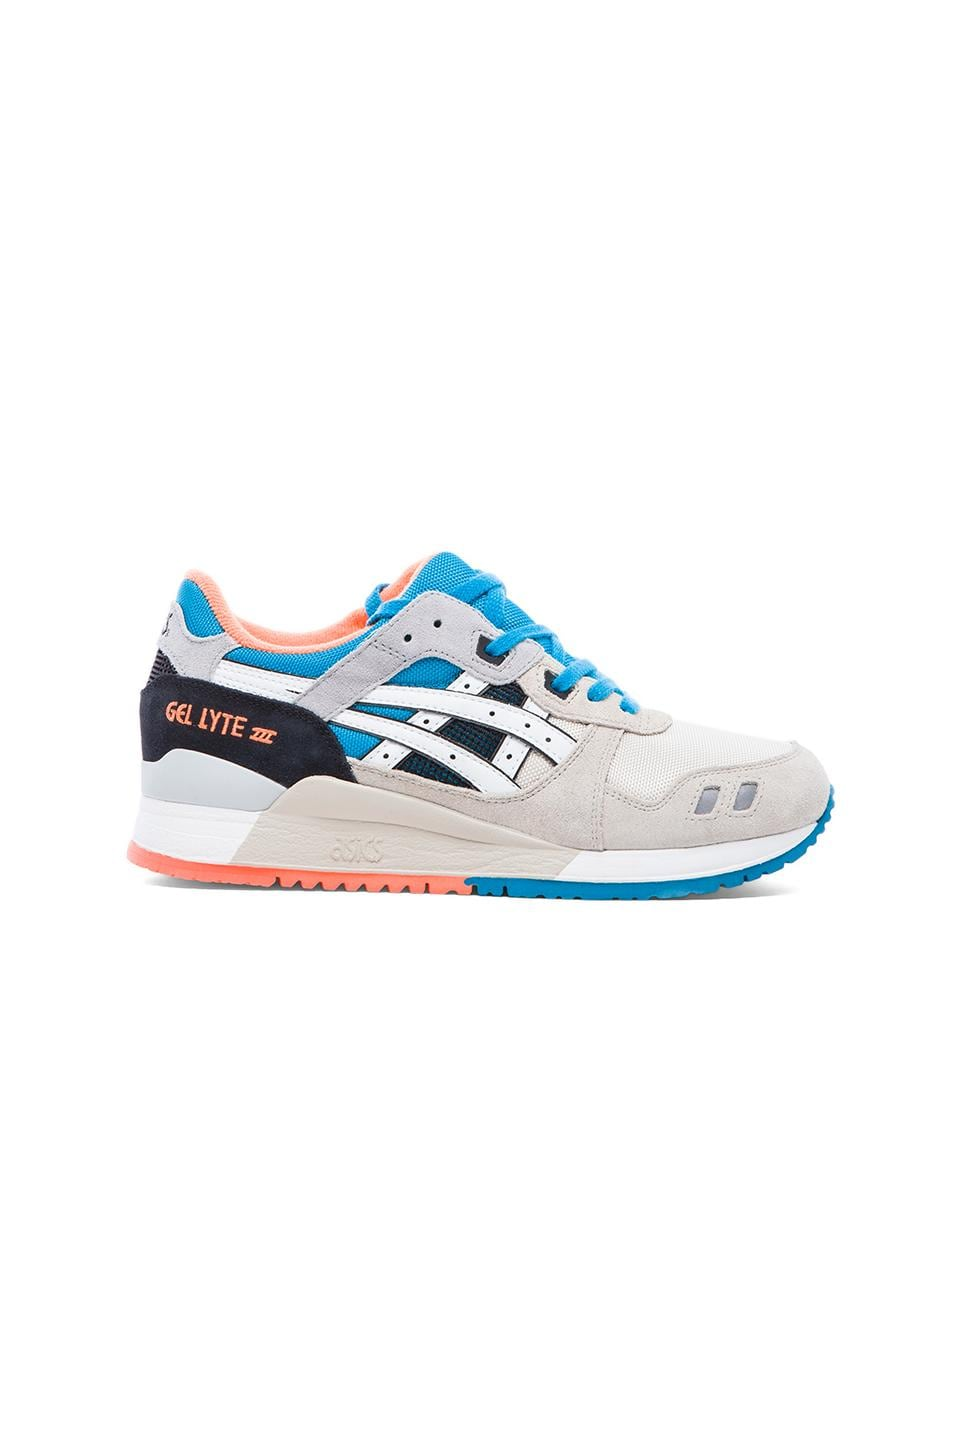 Asics Gel-Lyte III in Off-White & White